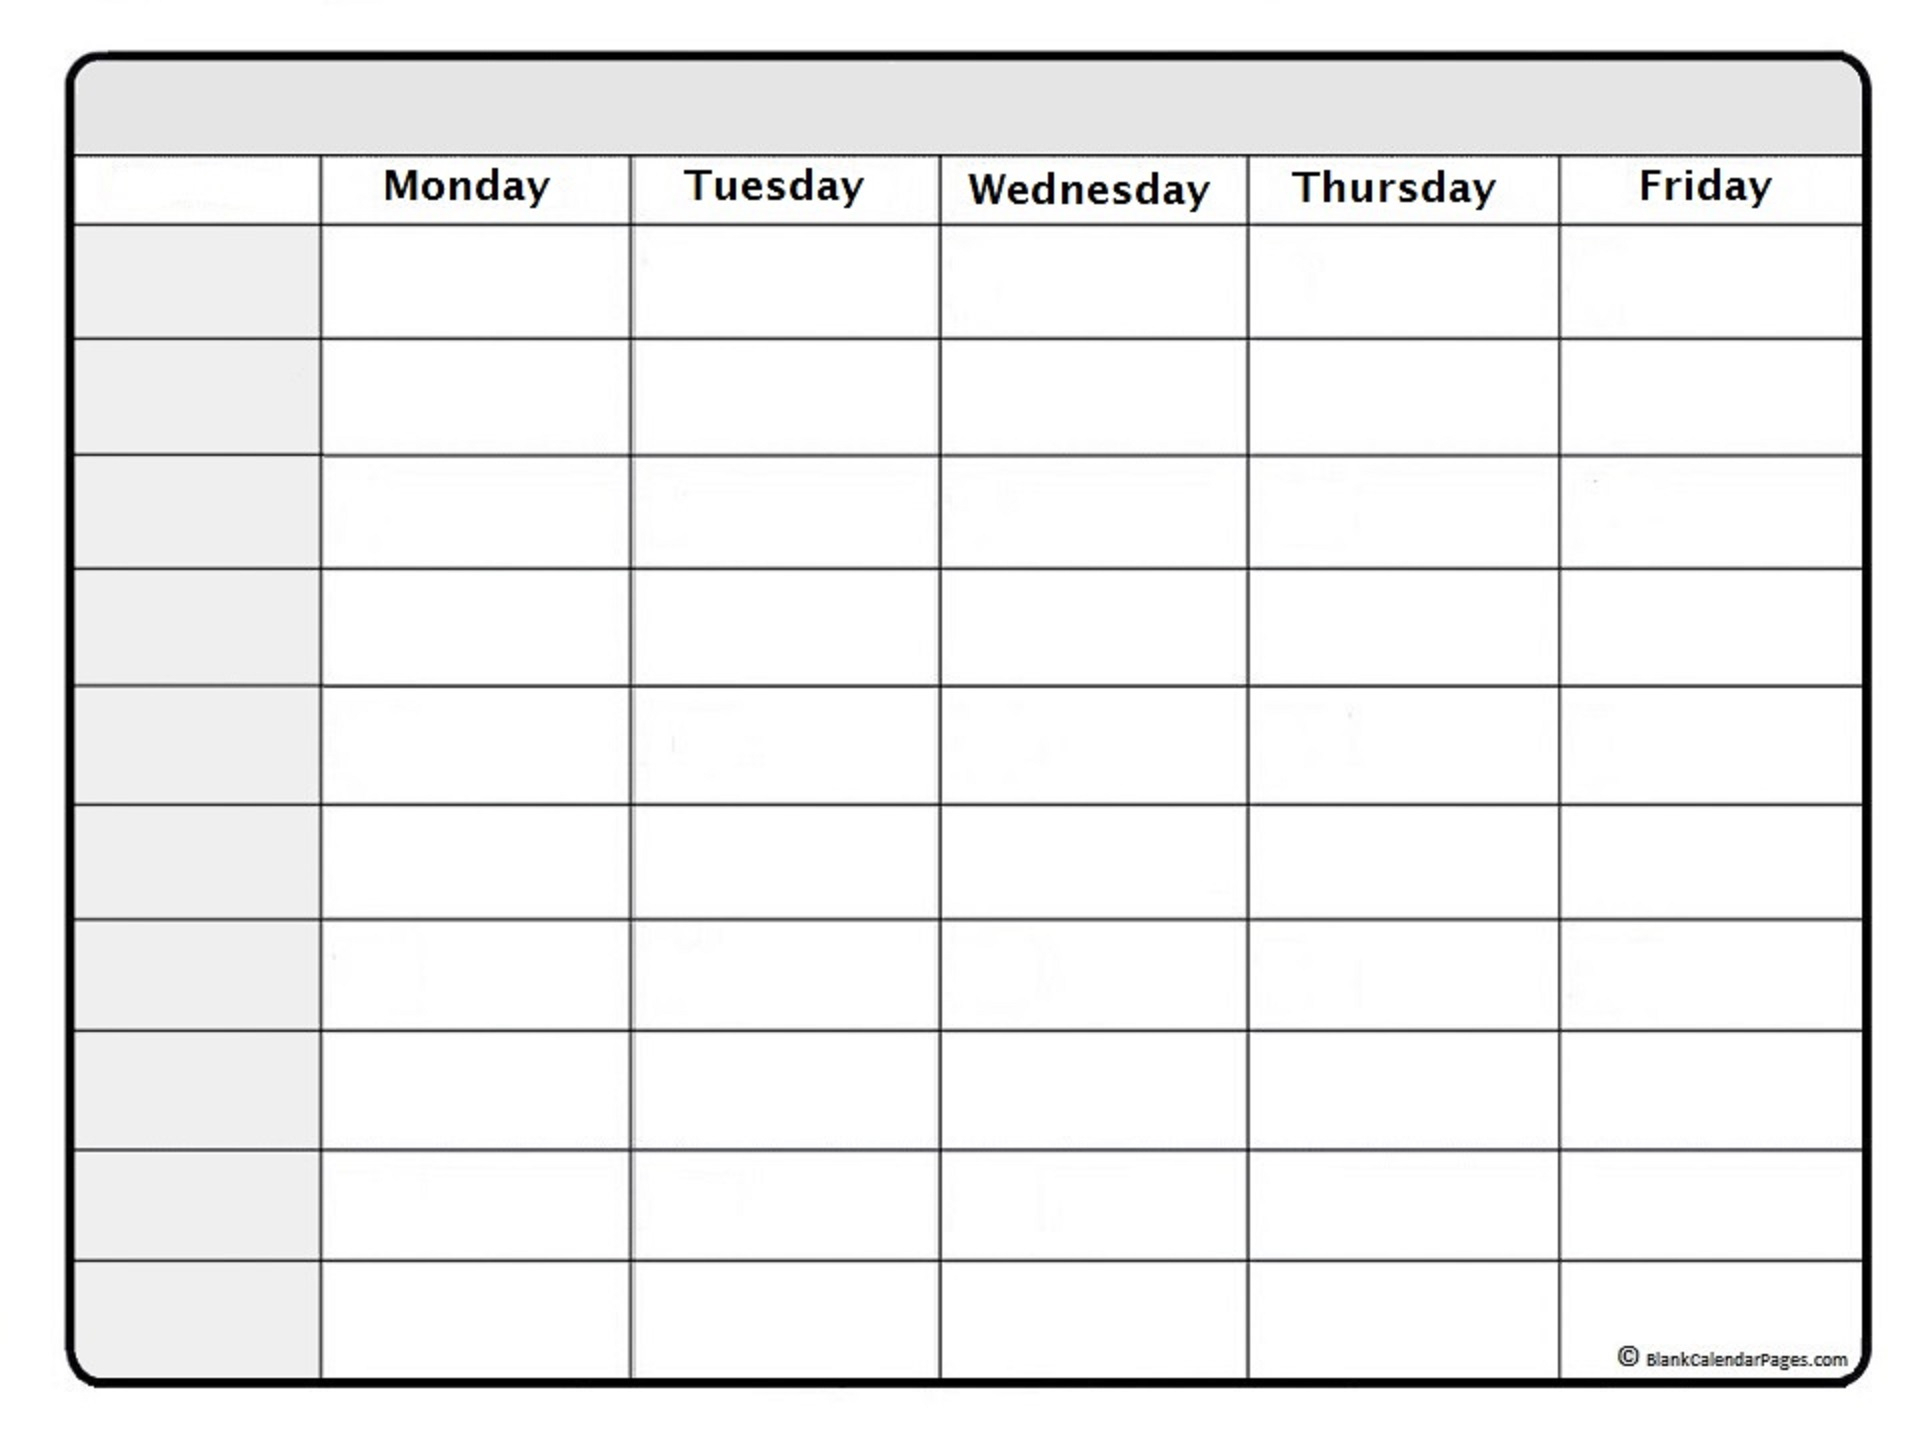 August 2019 Weekly Calendar | August 2019 Weekly Calendar Template with regard to Printable Blank Weekly Calendars Templates